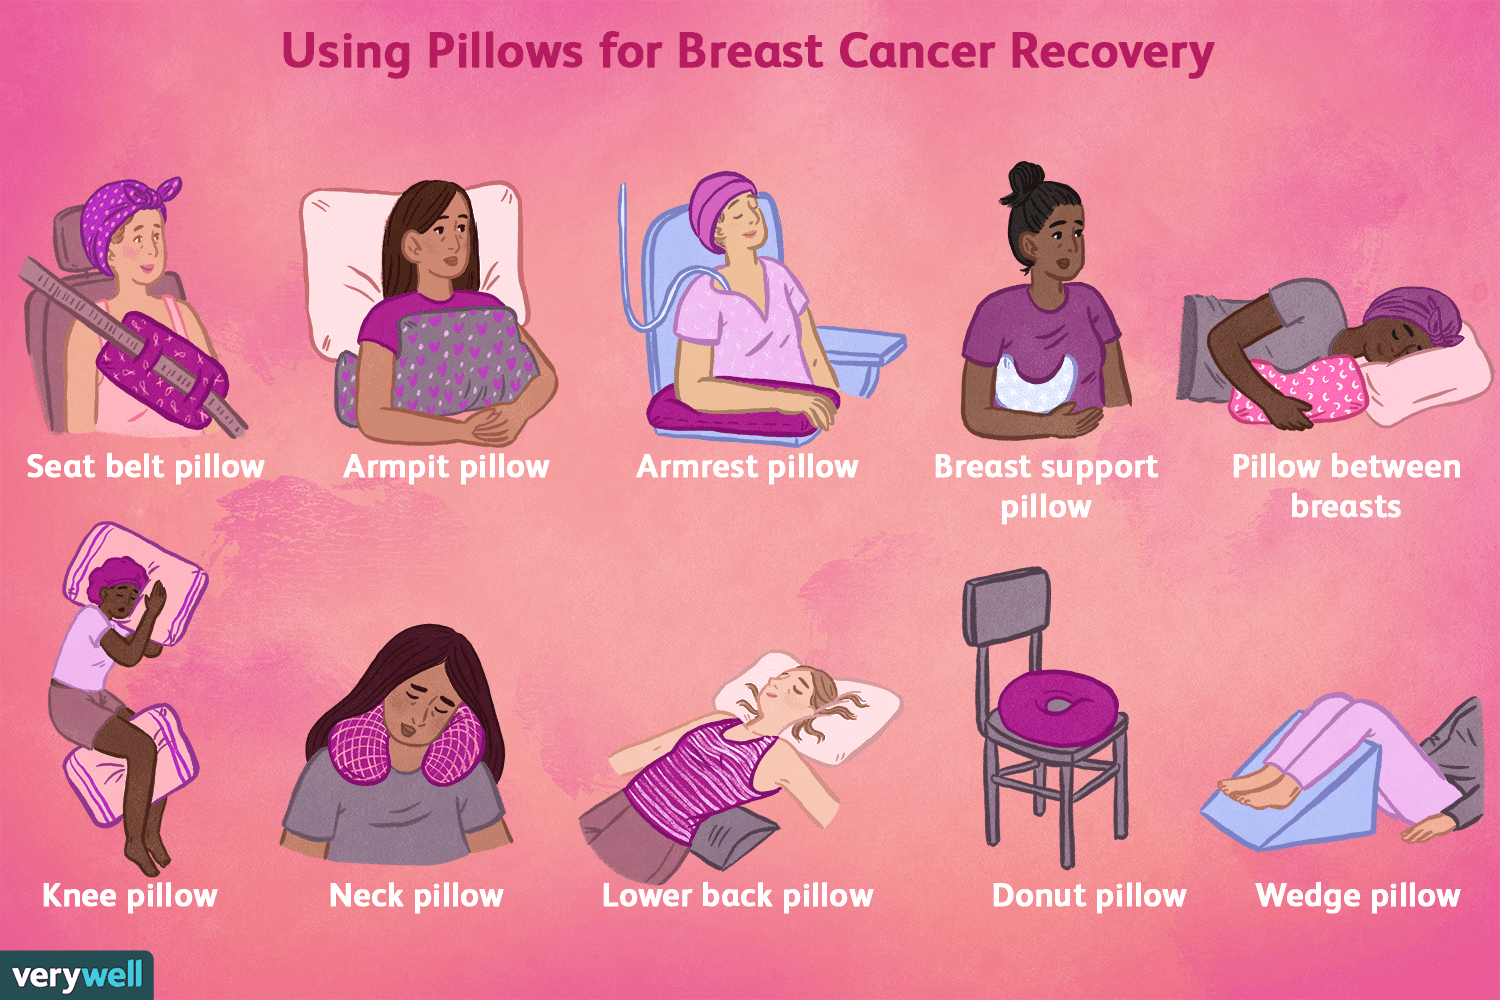 10 Comfort Pillows To Use During Breast Cancer Treatment